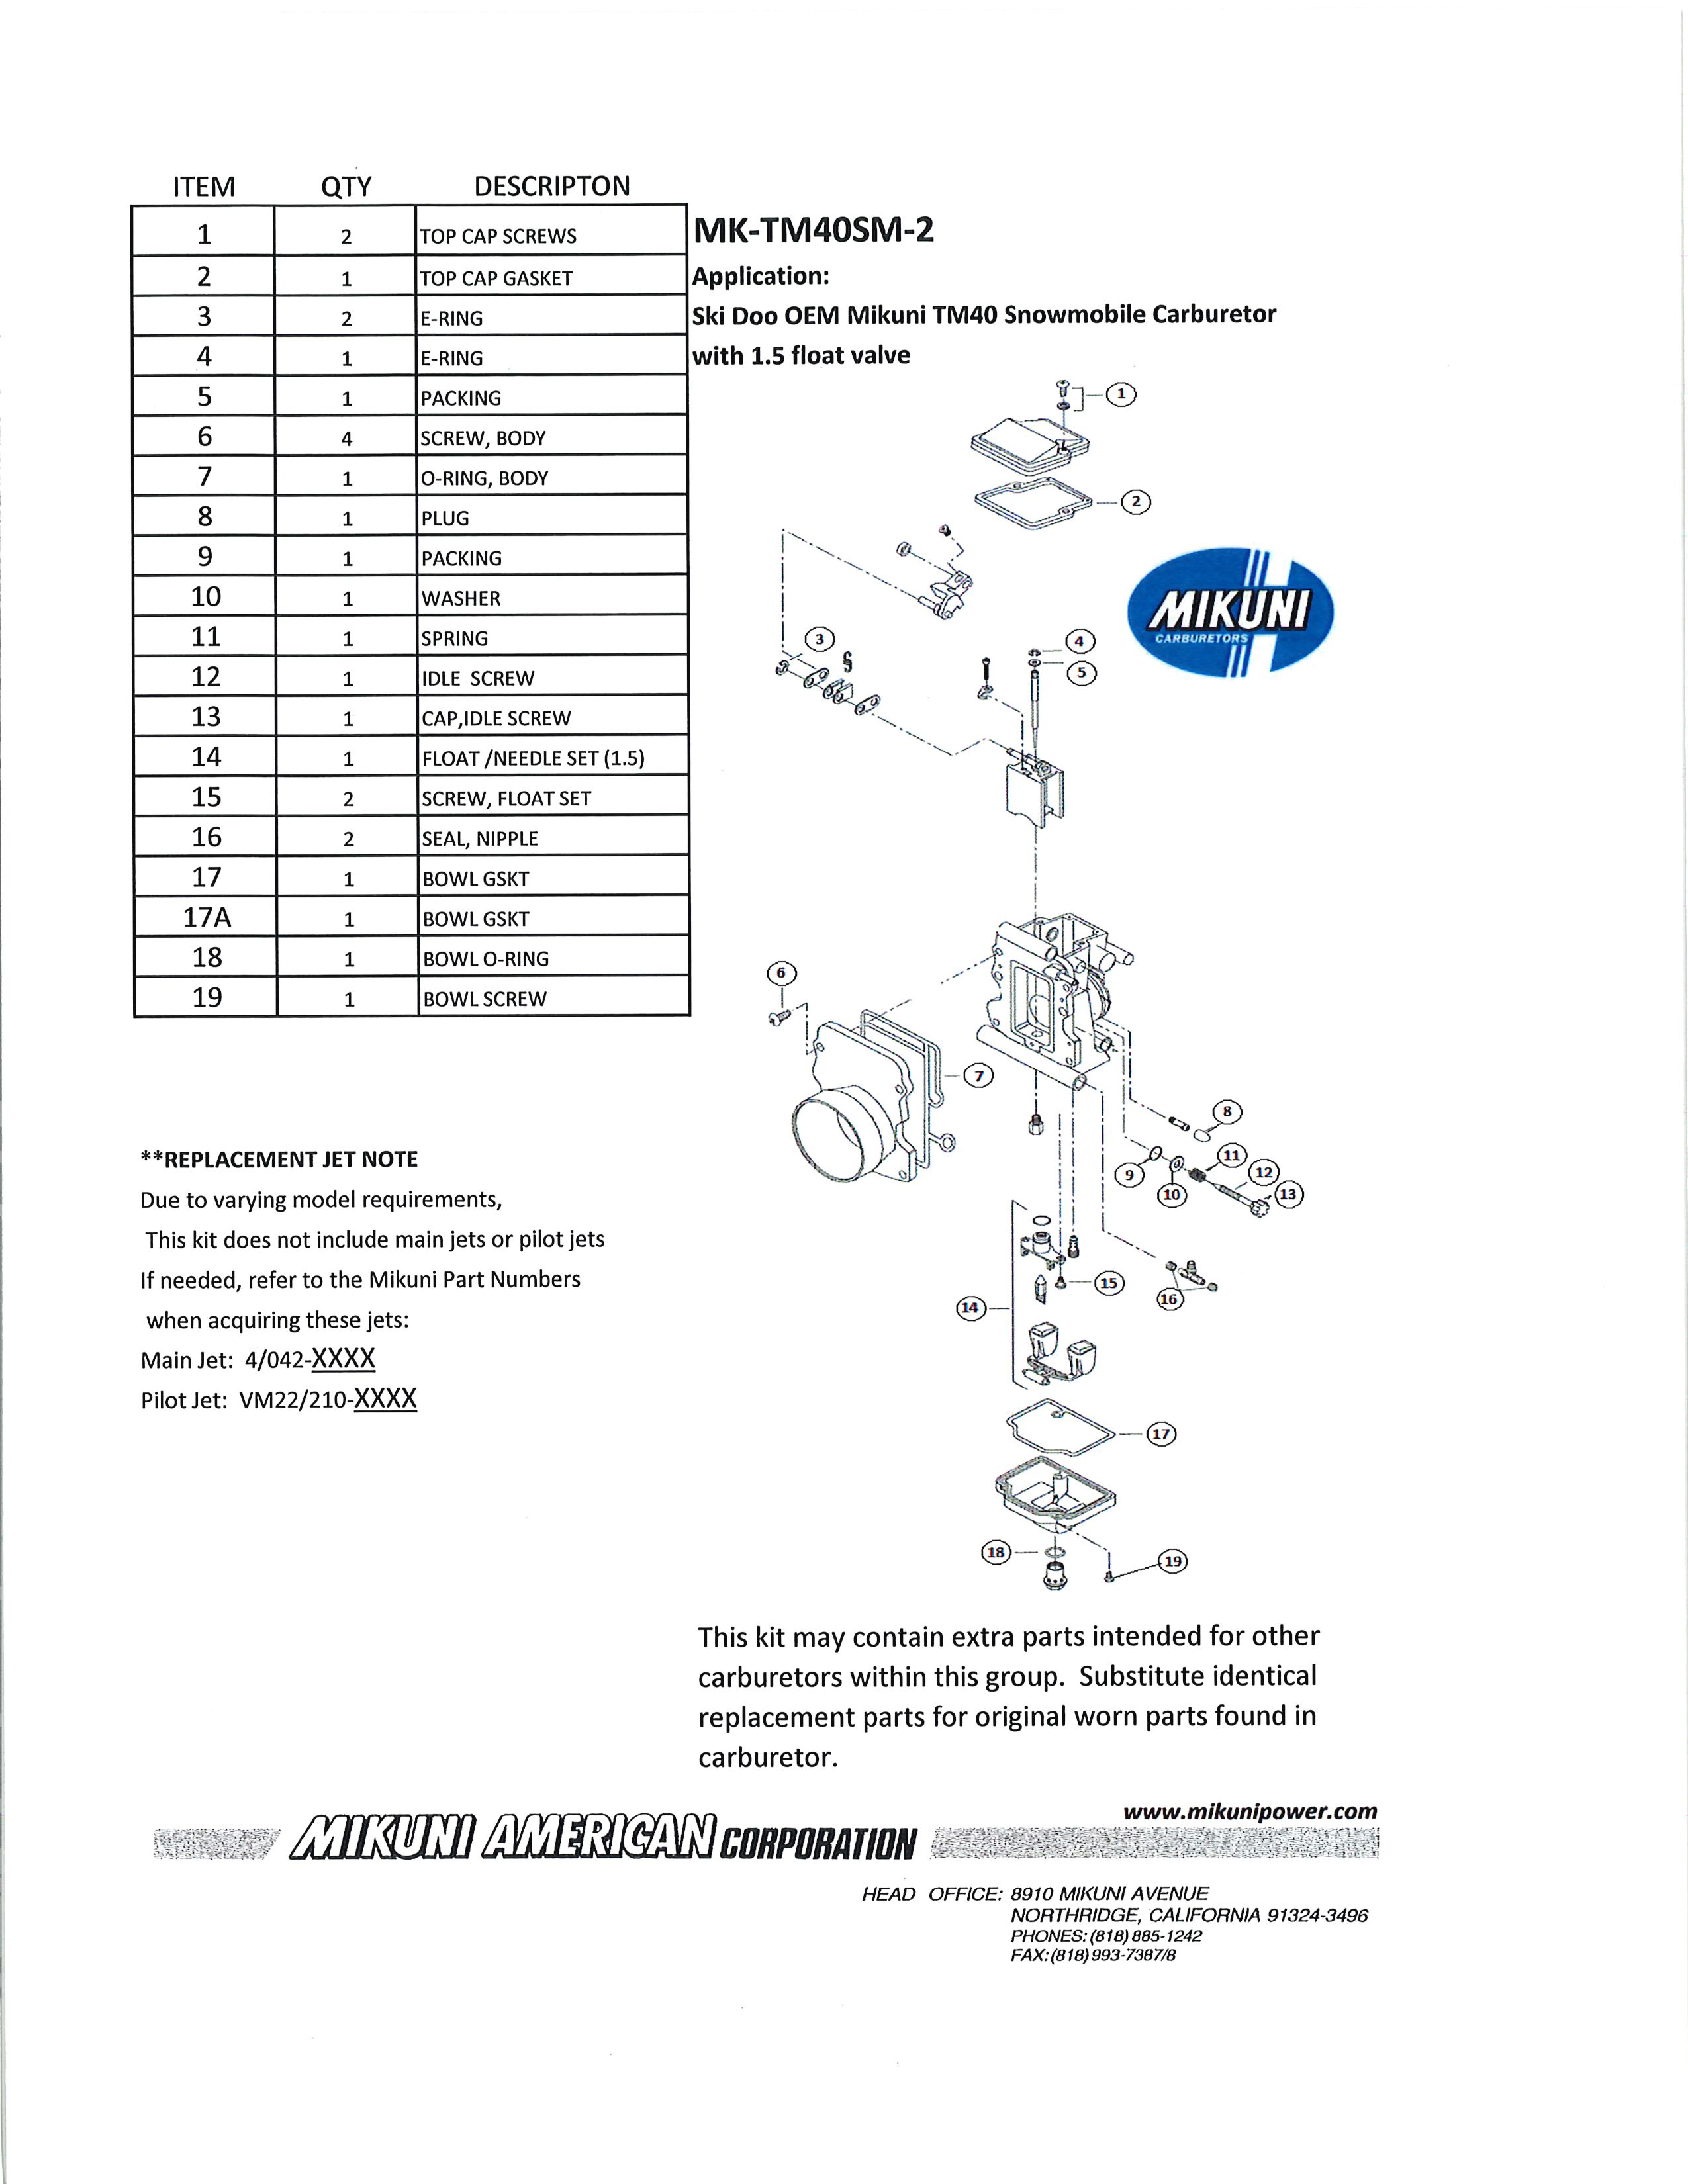 Mikuni Power - Mikuni Genuine Carburetor & Fuel Pump Rebuild Kits